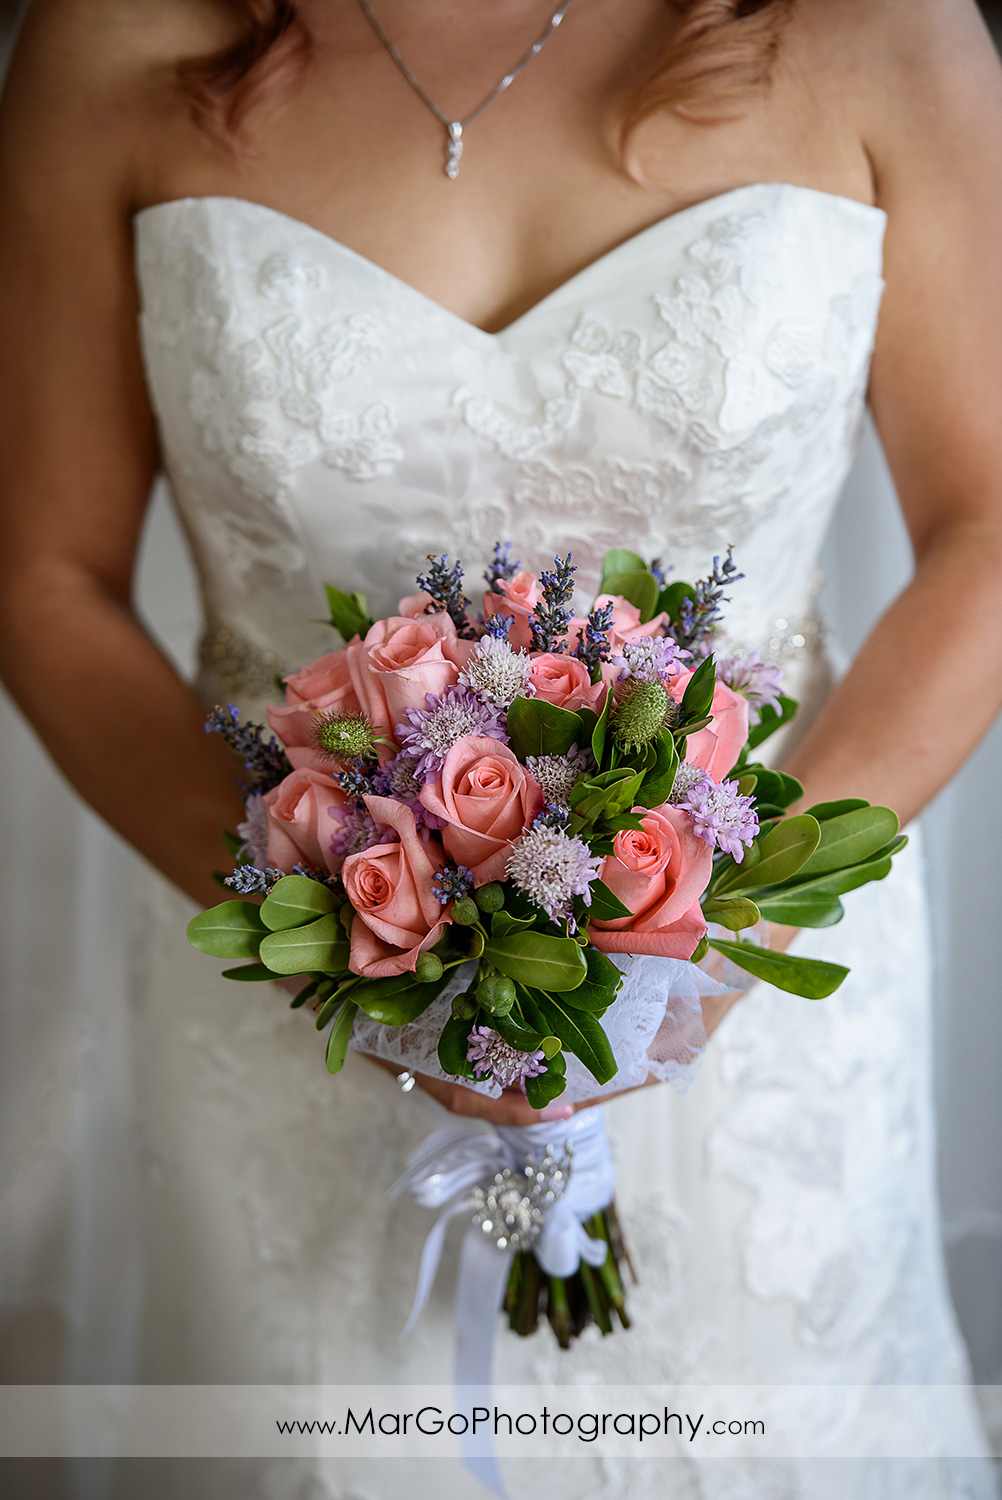 bridal bouquet at Mavericks Event Center in Half Moon Bay